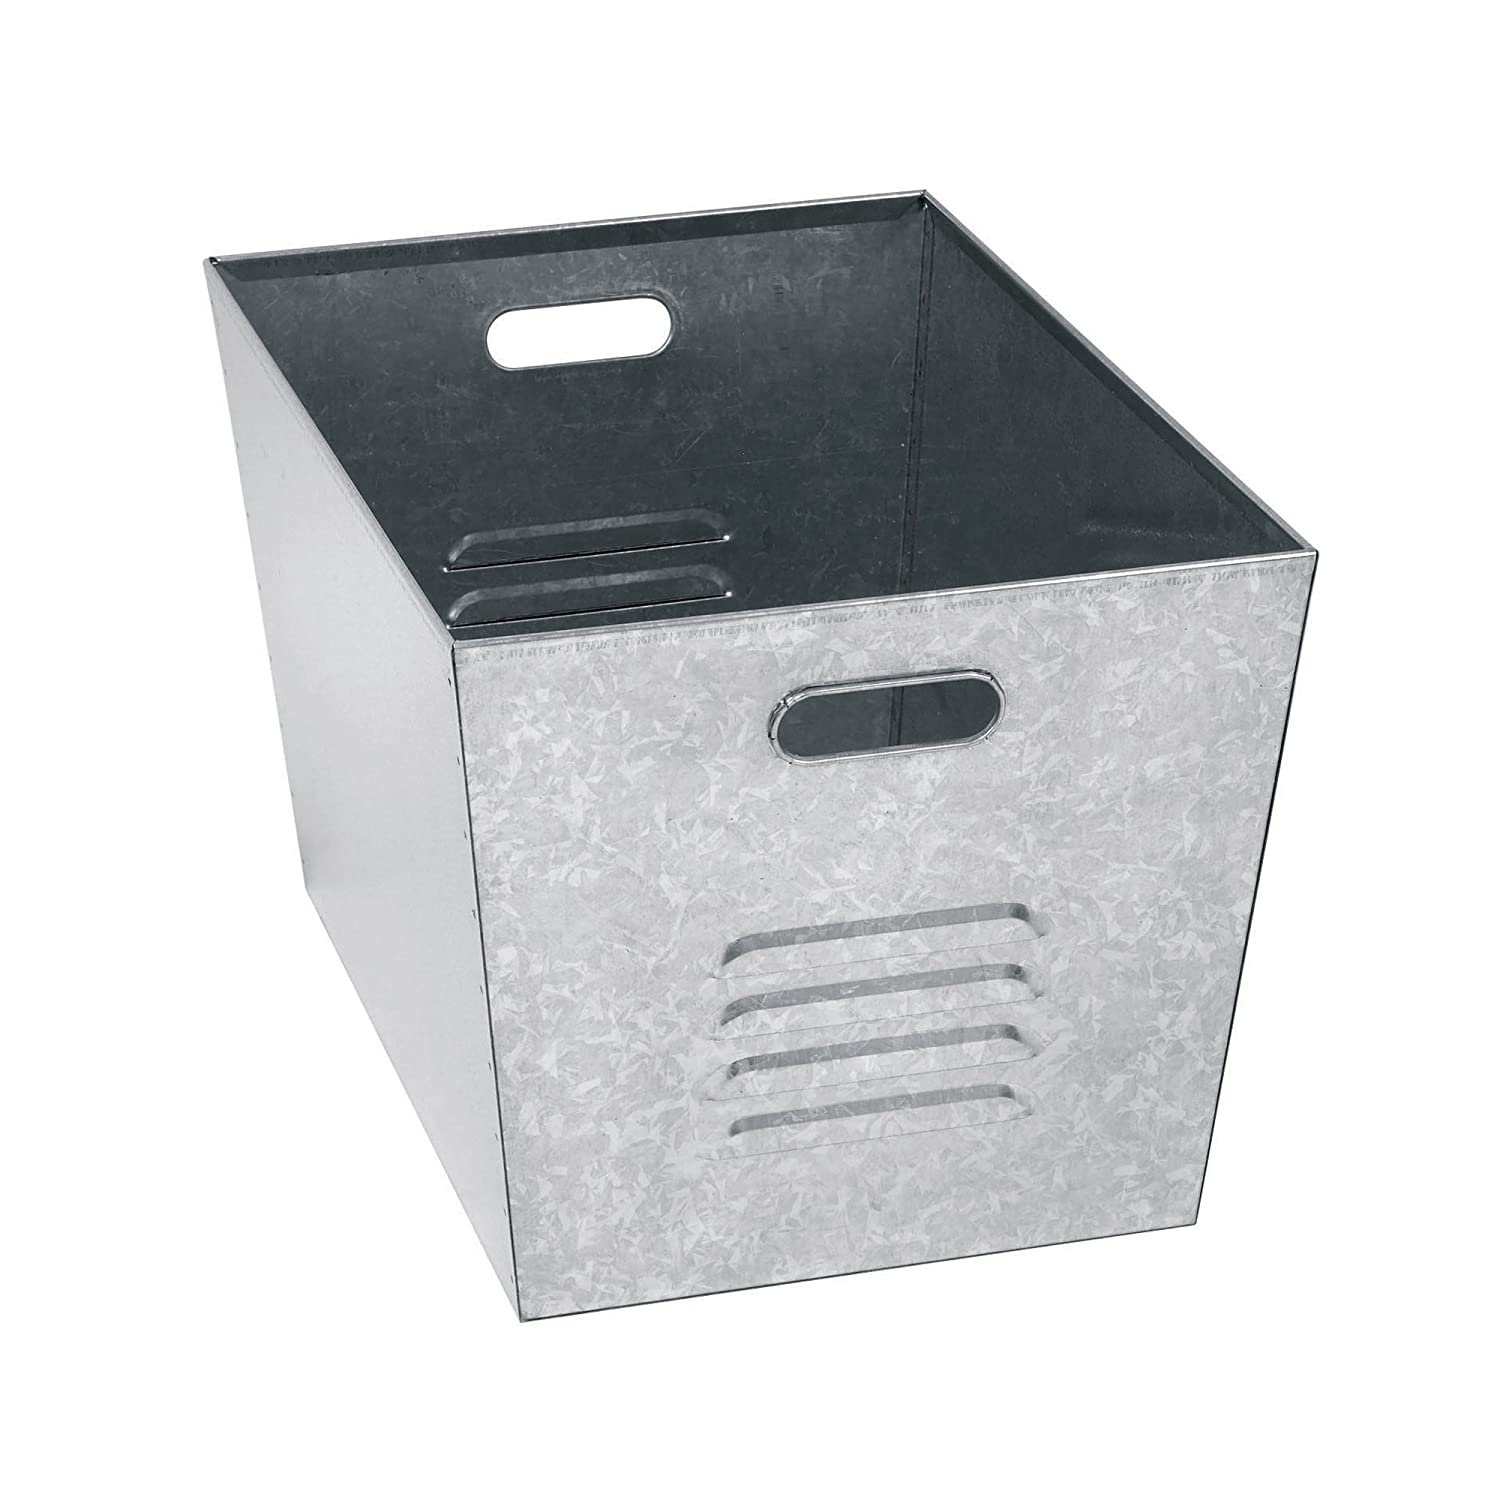 "EDSAL Muscle Rack LB111310 Steel Galvanized Utility Bins 12"" Width x 11"" Height x 17"" Depth (2 X Pack of 6)"